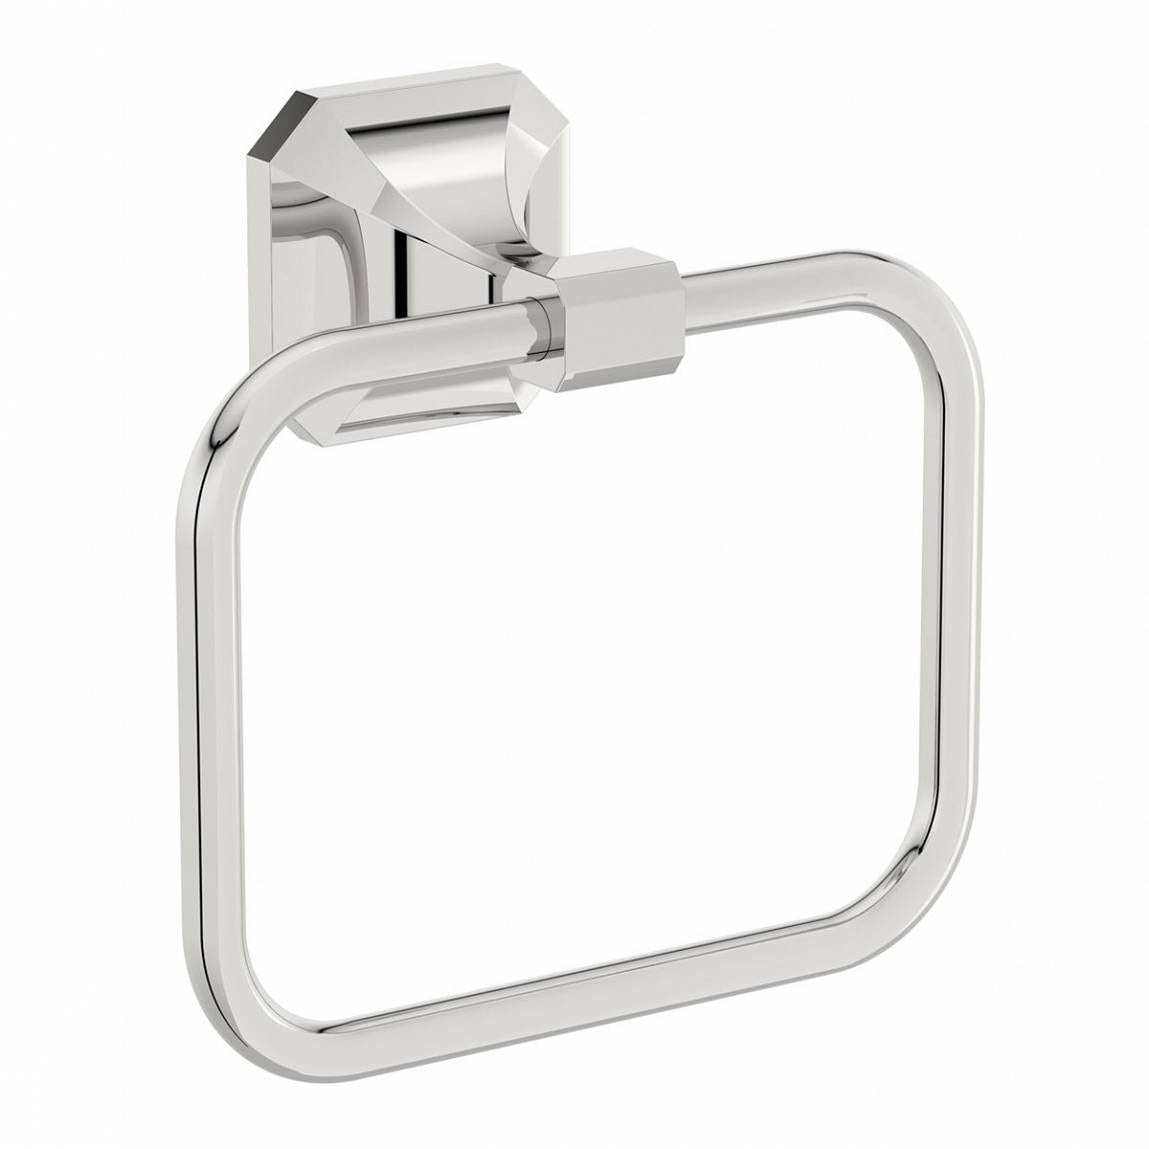 Camberley Square Towel Ring